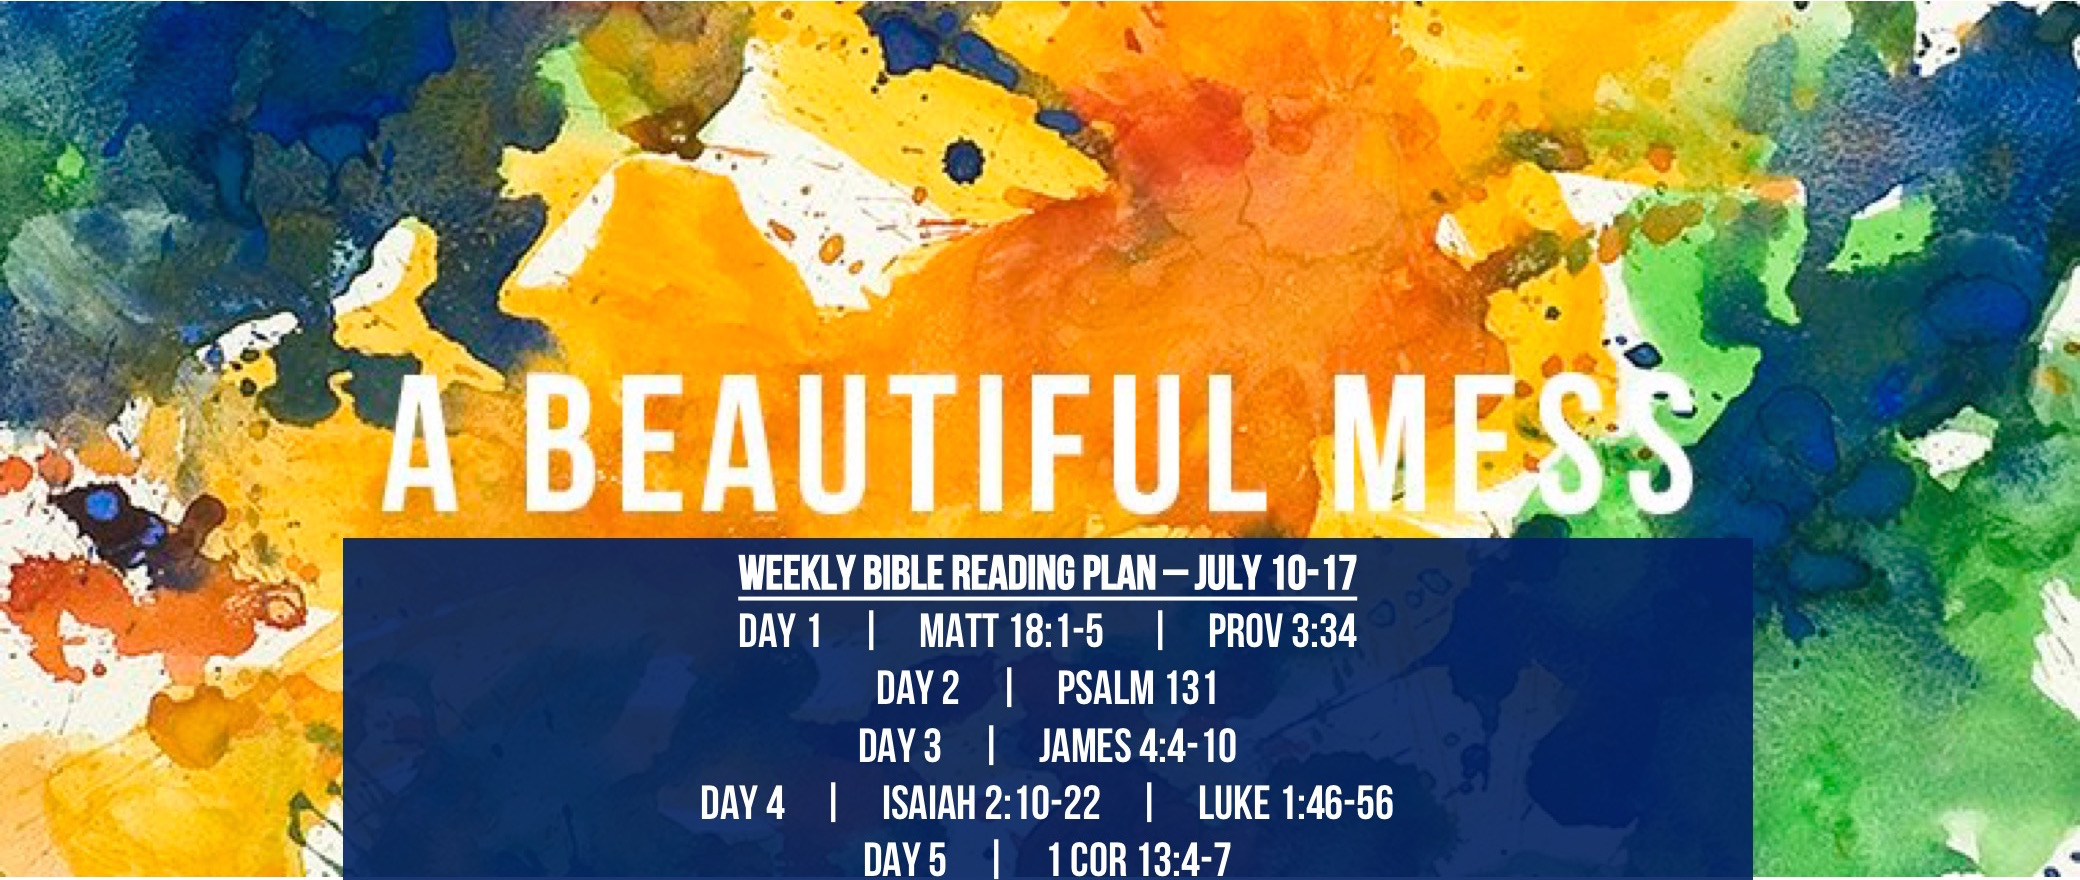 Matt 18.1-5 - Reading Plan -  July 10-17.2016 - A Beautiful Mess - Ego Church